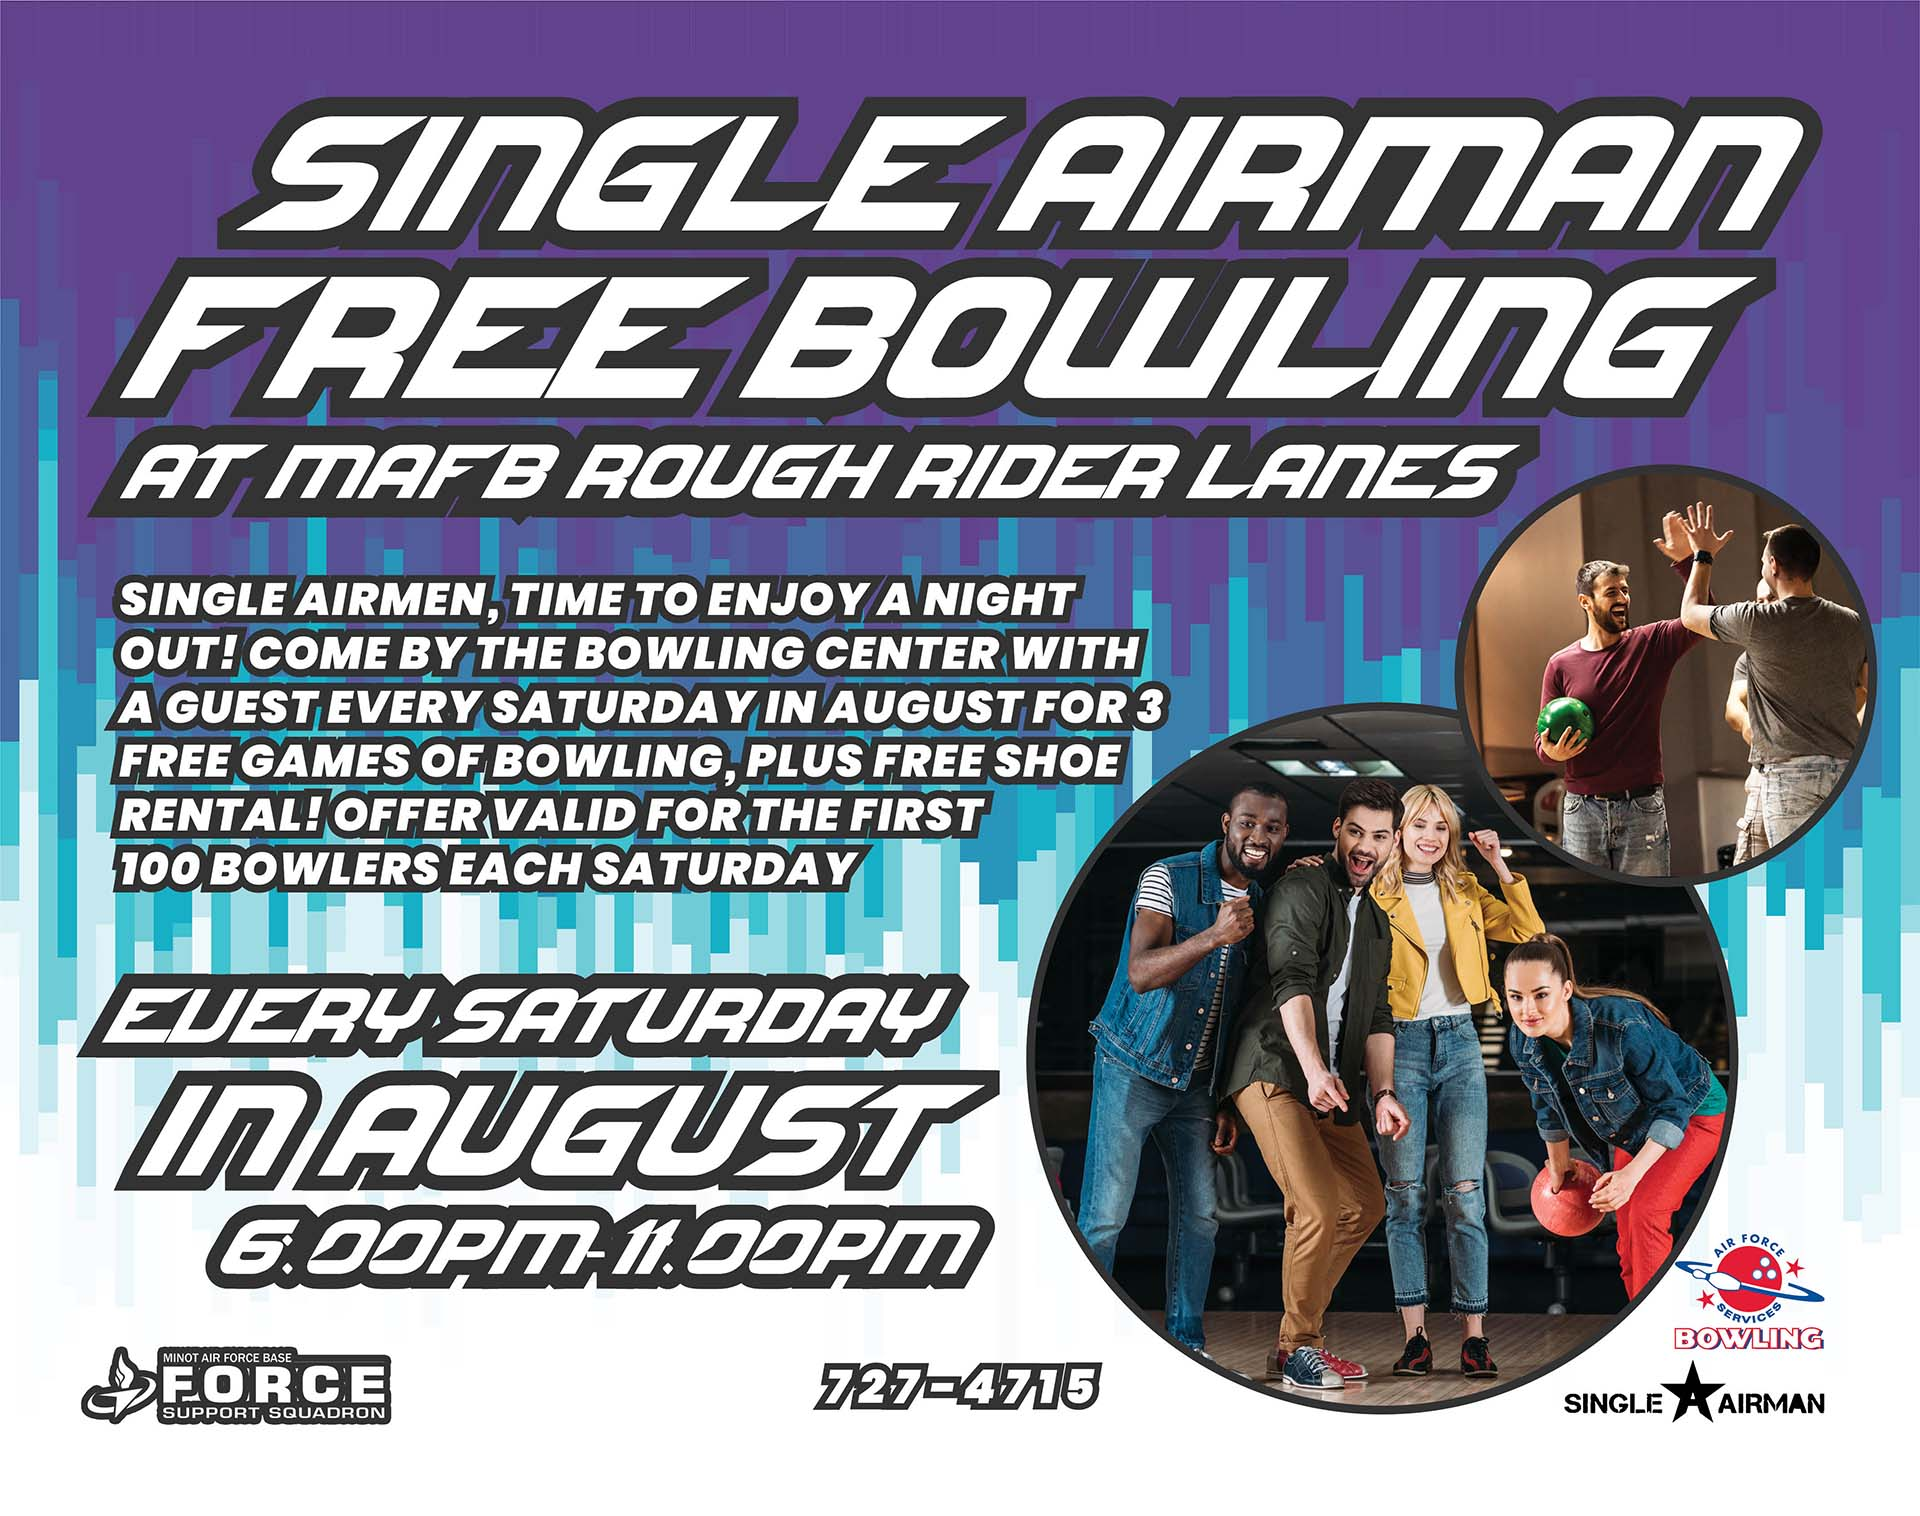 Single Airman Free Bowling